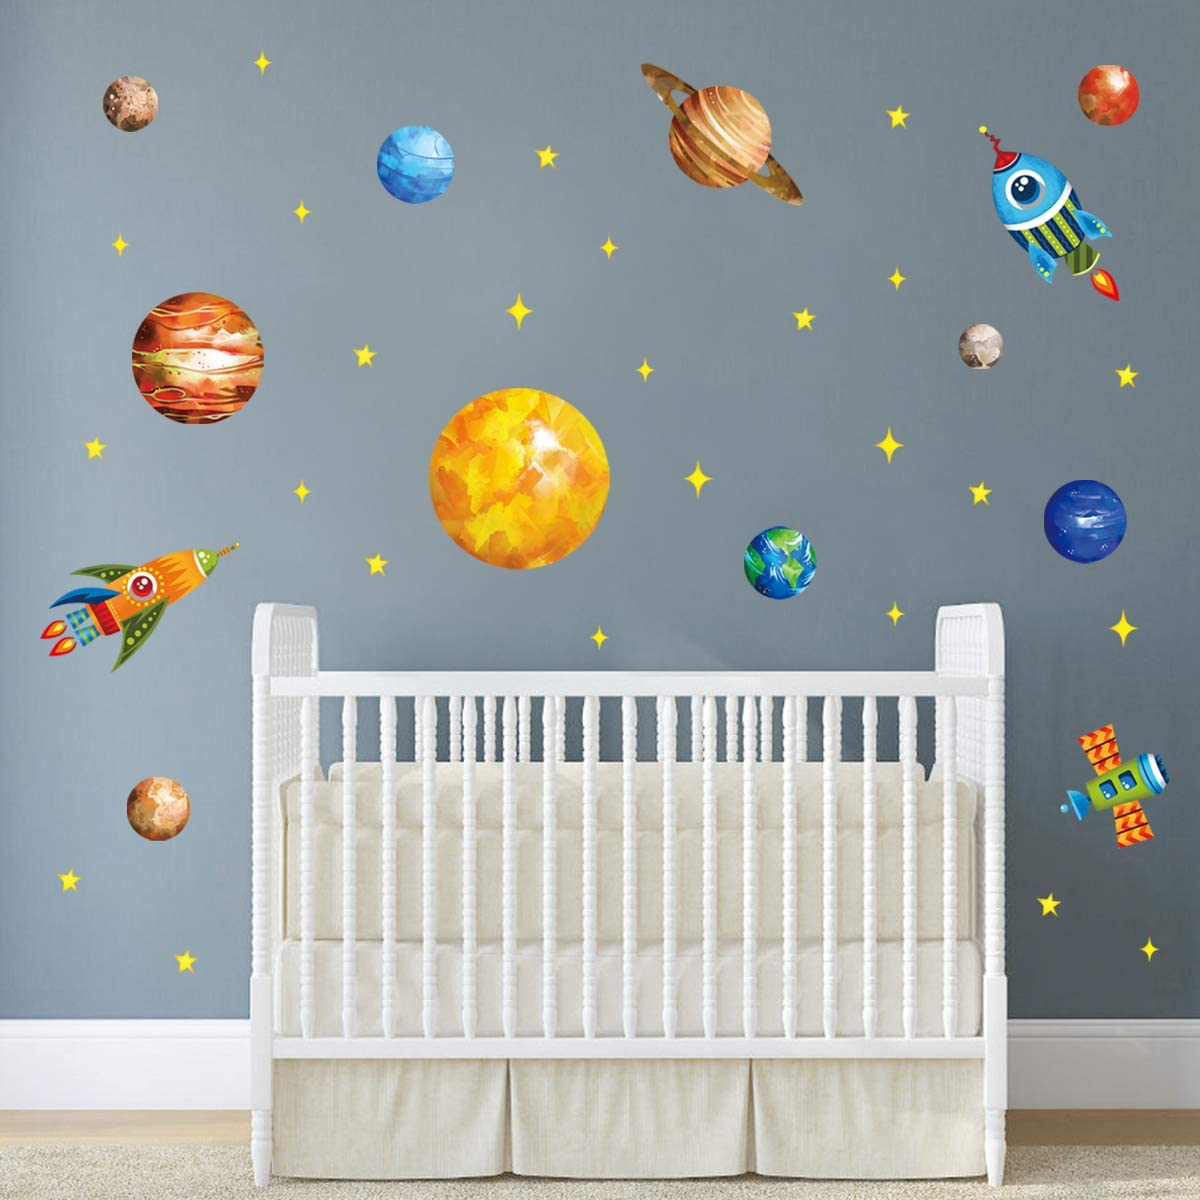 decalmile Planet Space Wall Decals Solar System Stars Rockets Wall Stickers Baby Nursery Boys Bedroom Playroom Wall Decor